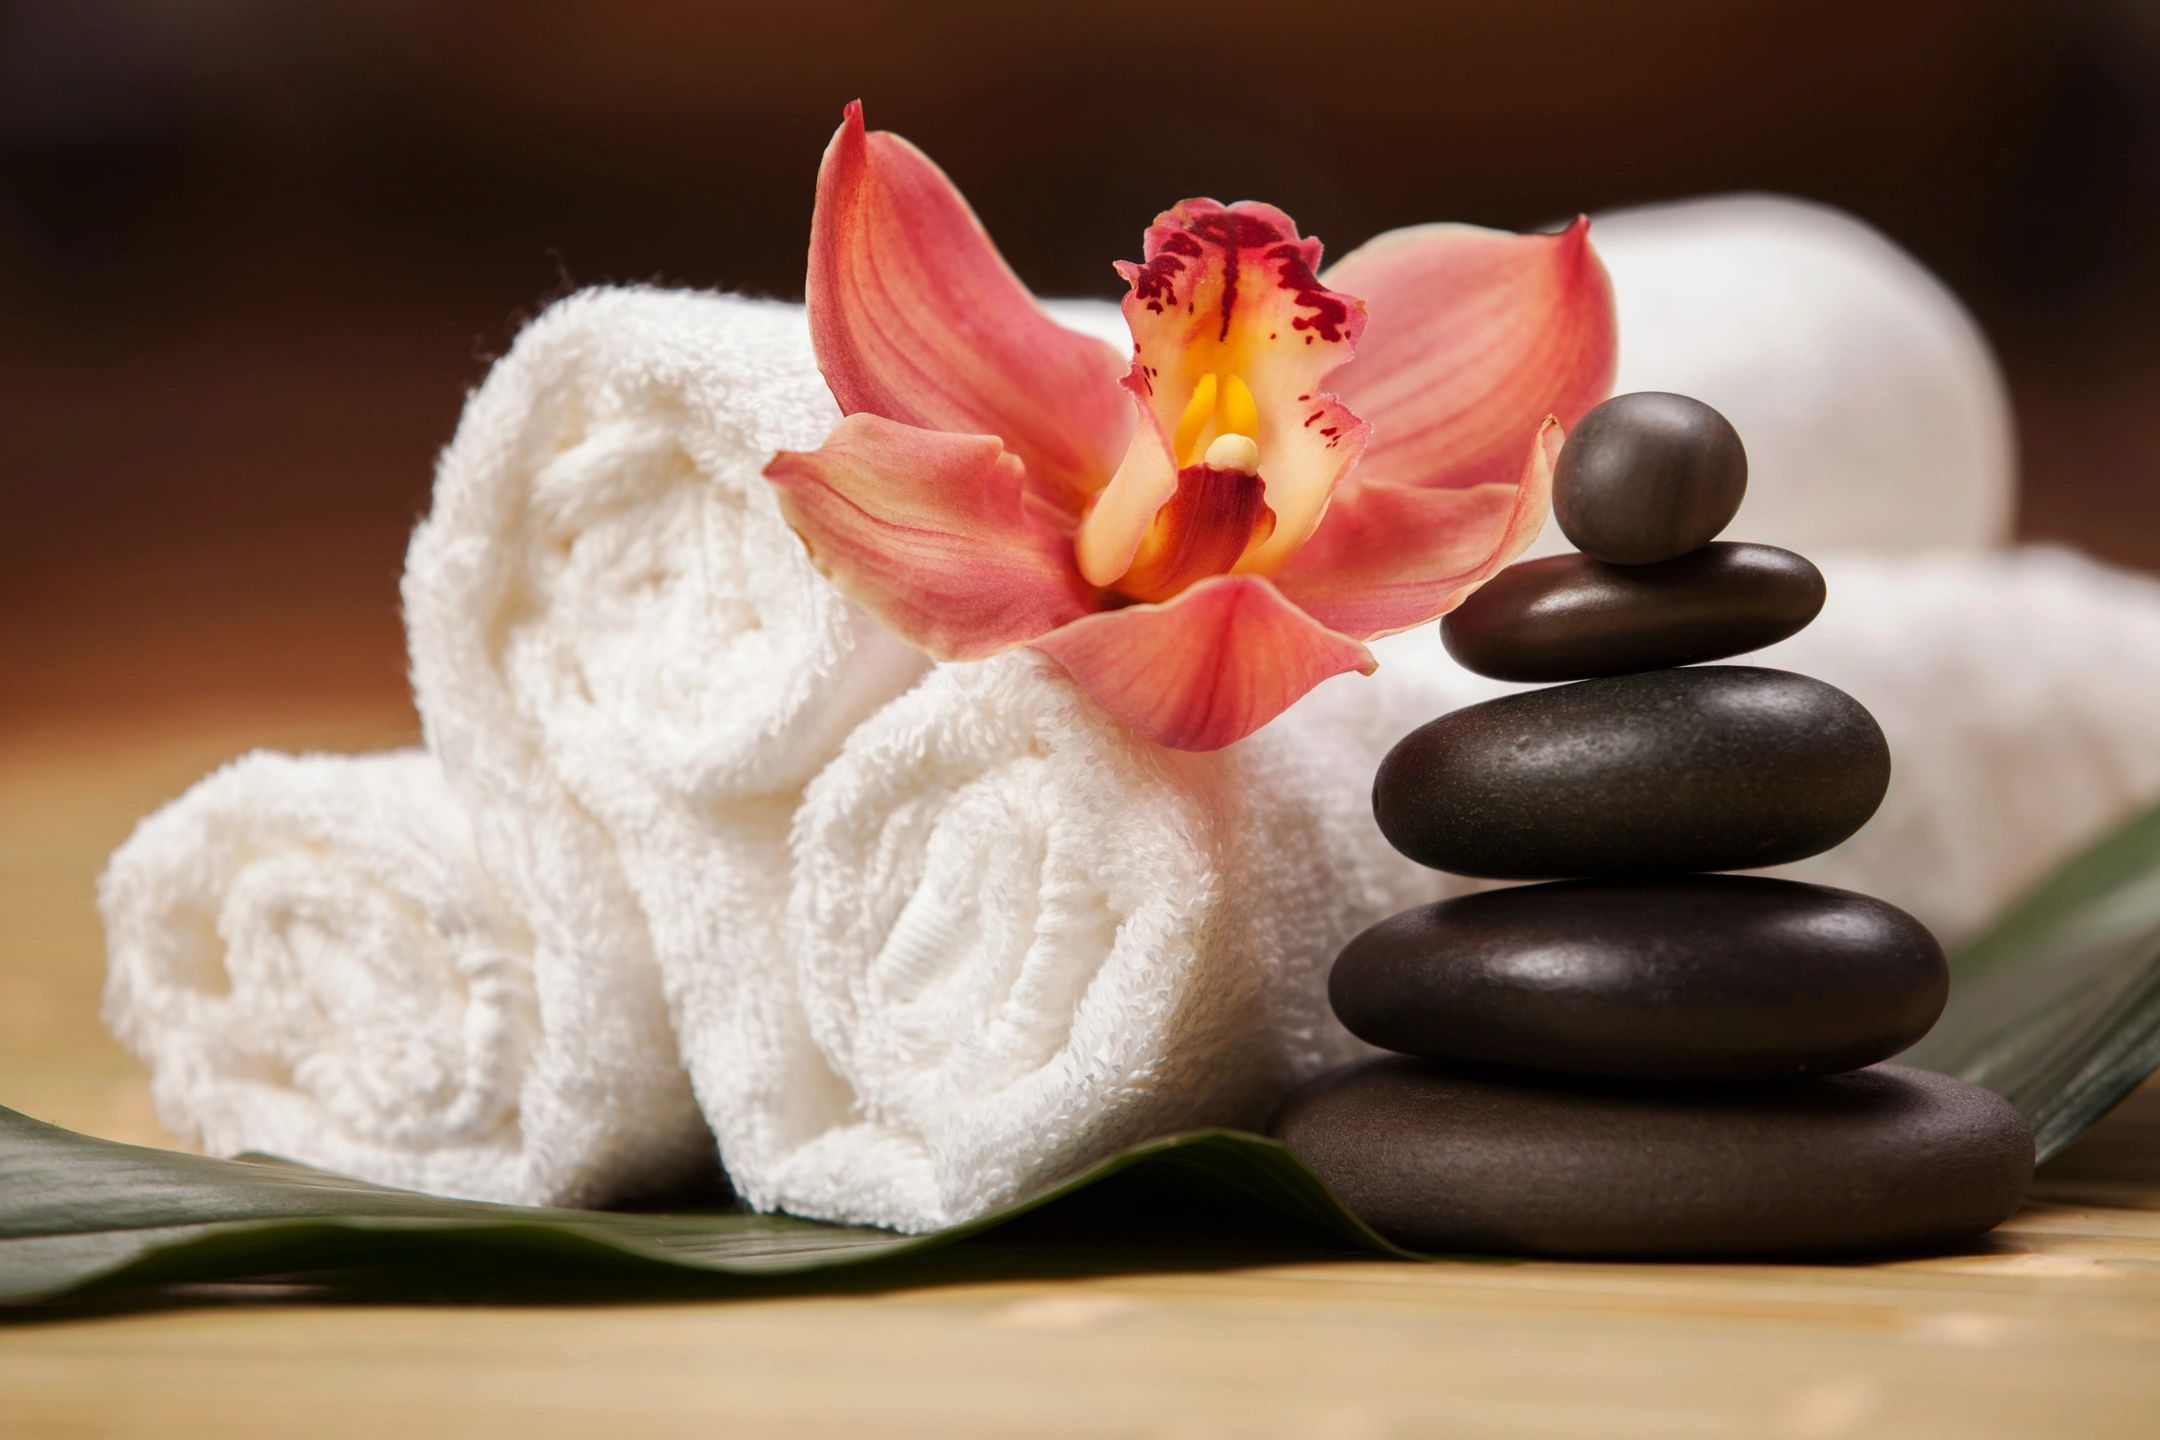 qtq80-pnlpTU Massage Treatments Tampa